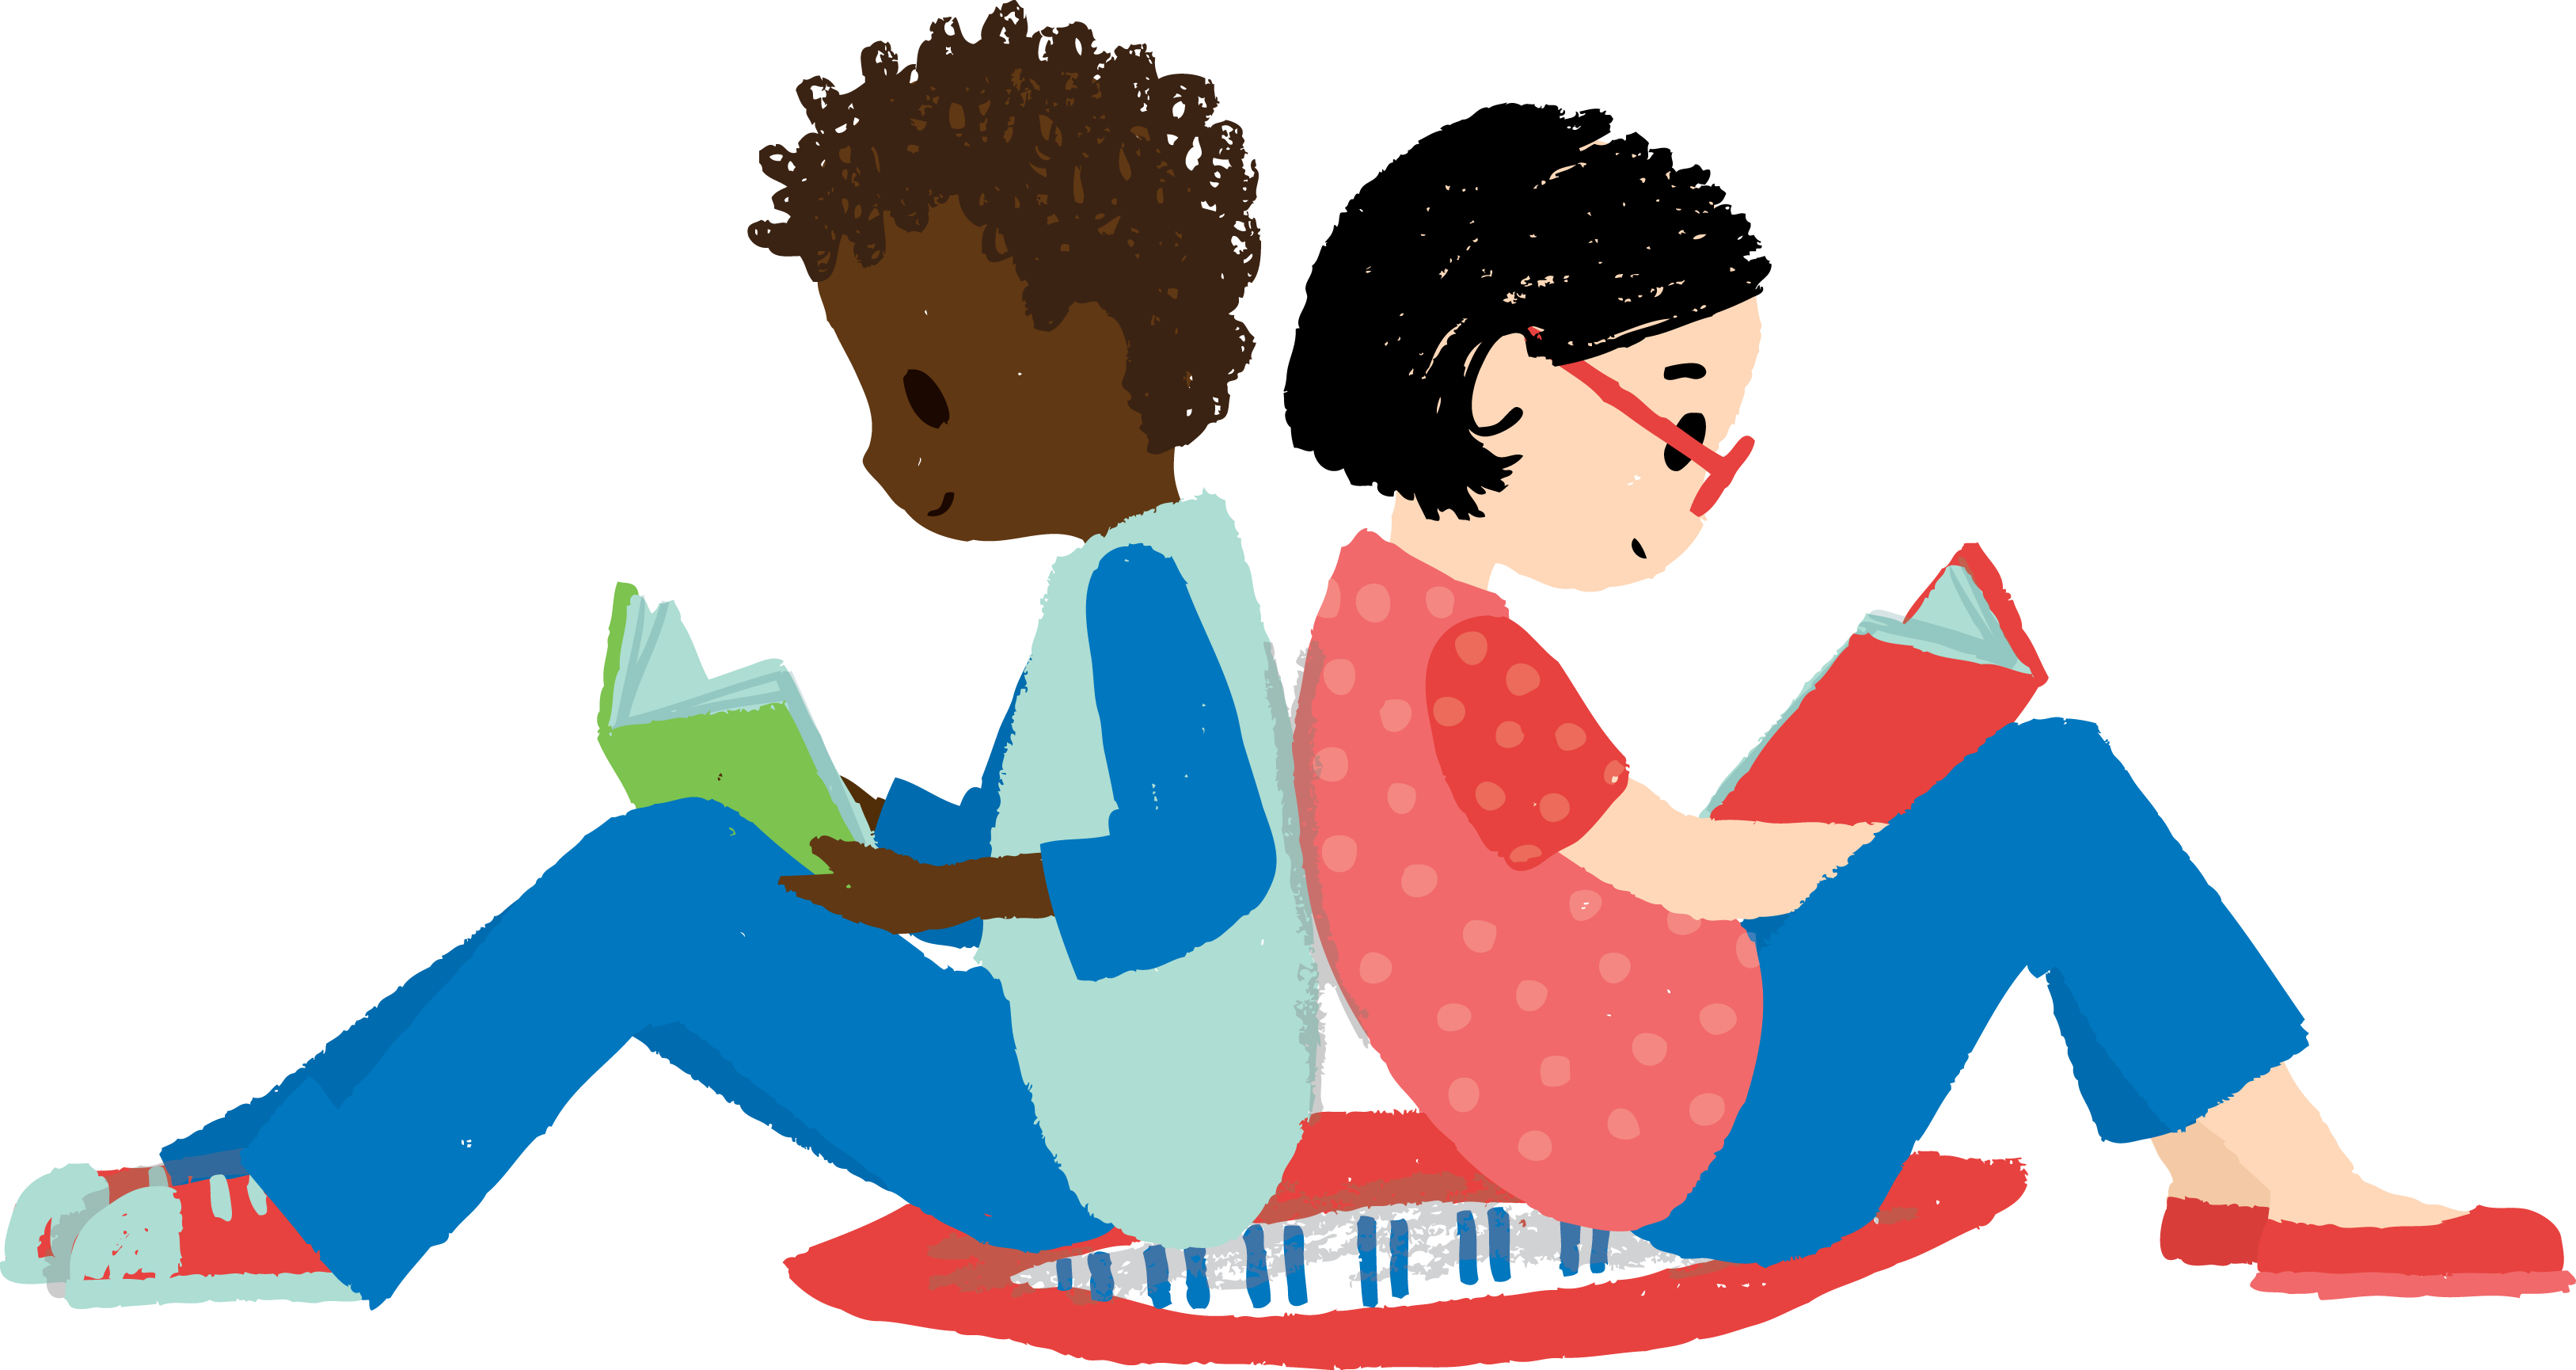 Clipart reading reading story book. Happy world day from